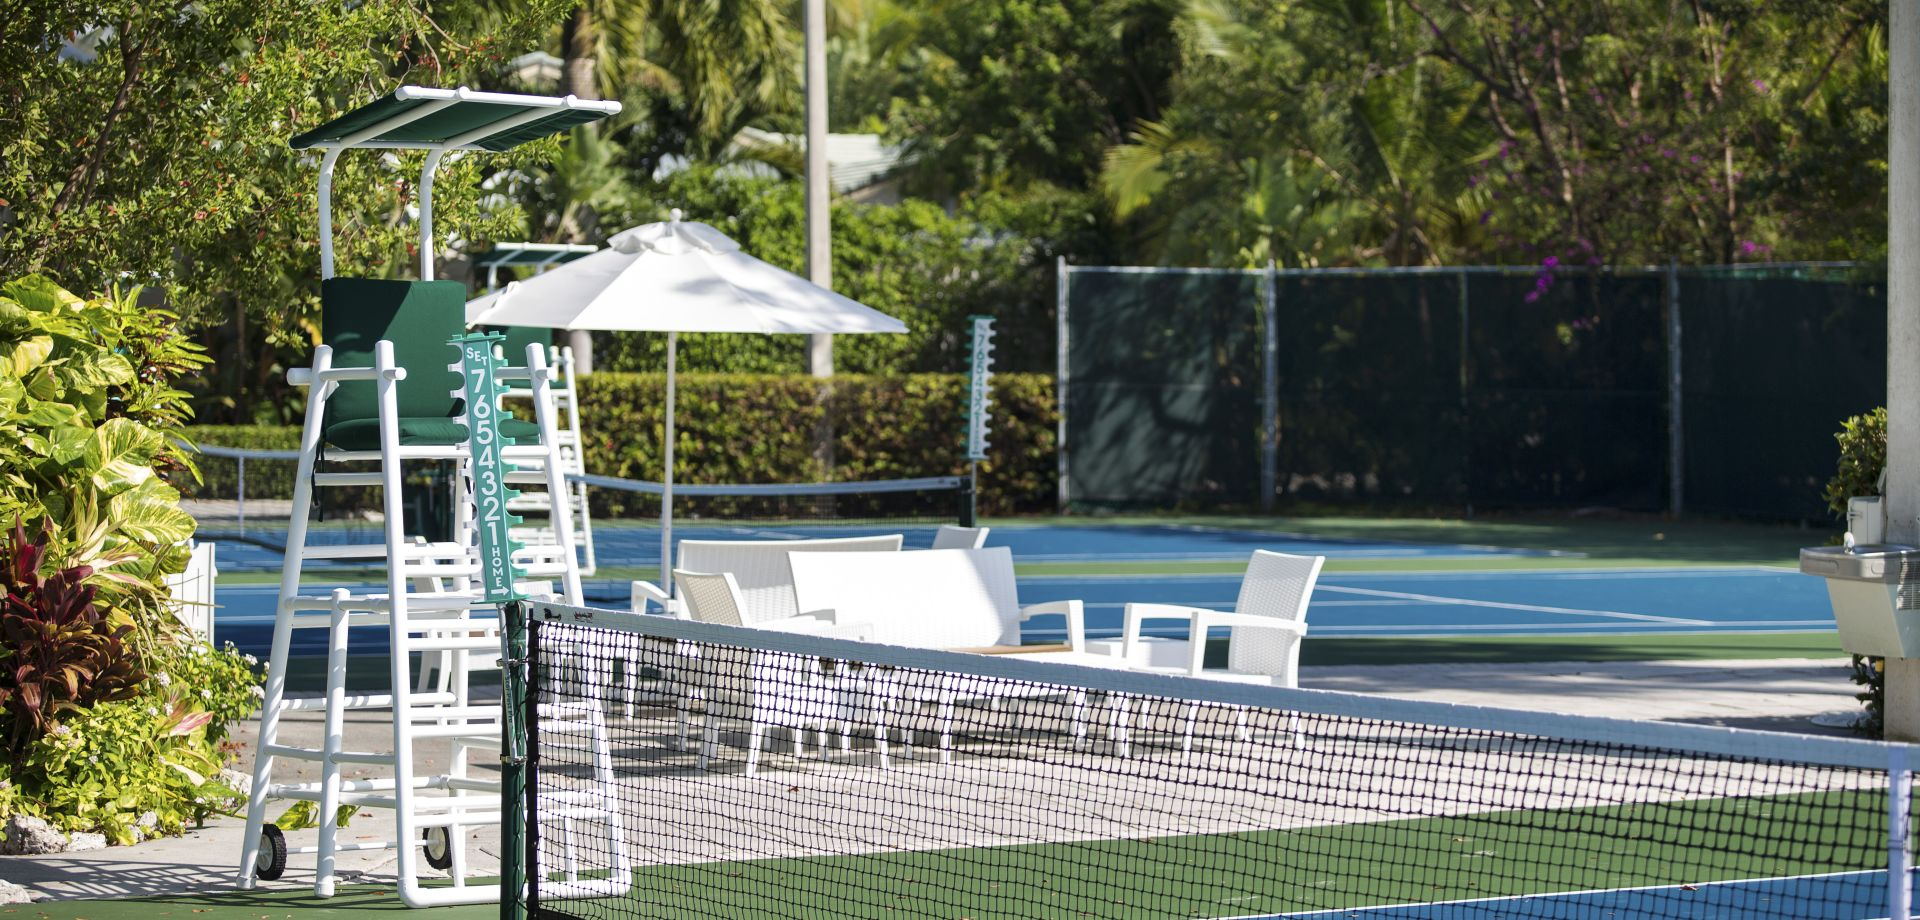 Tennis, Golf and Other Recreational Activities